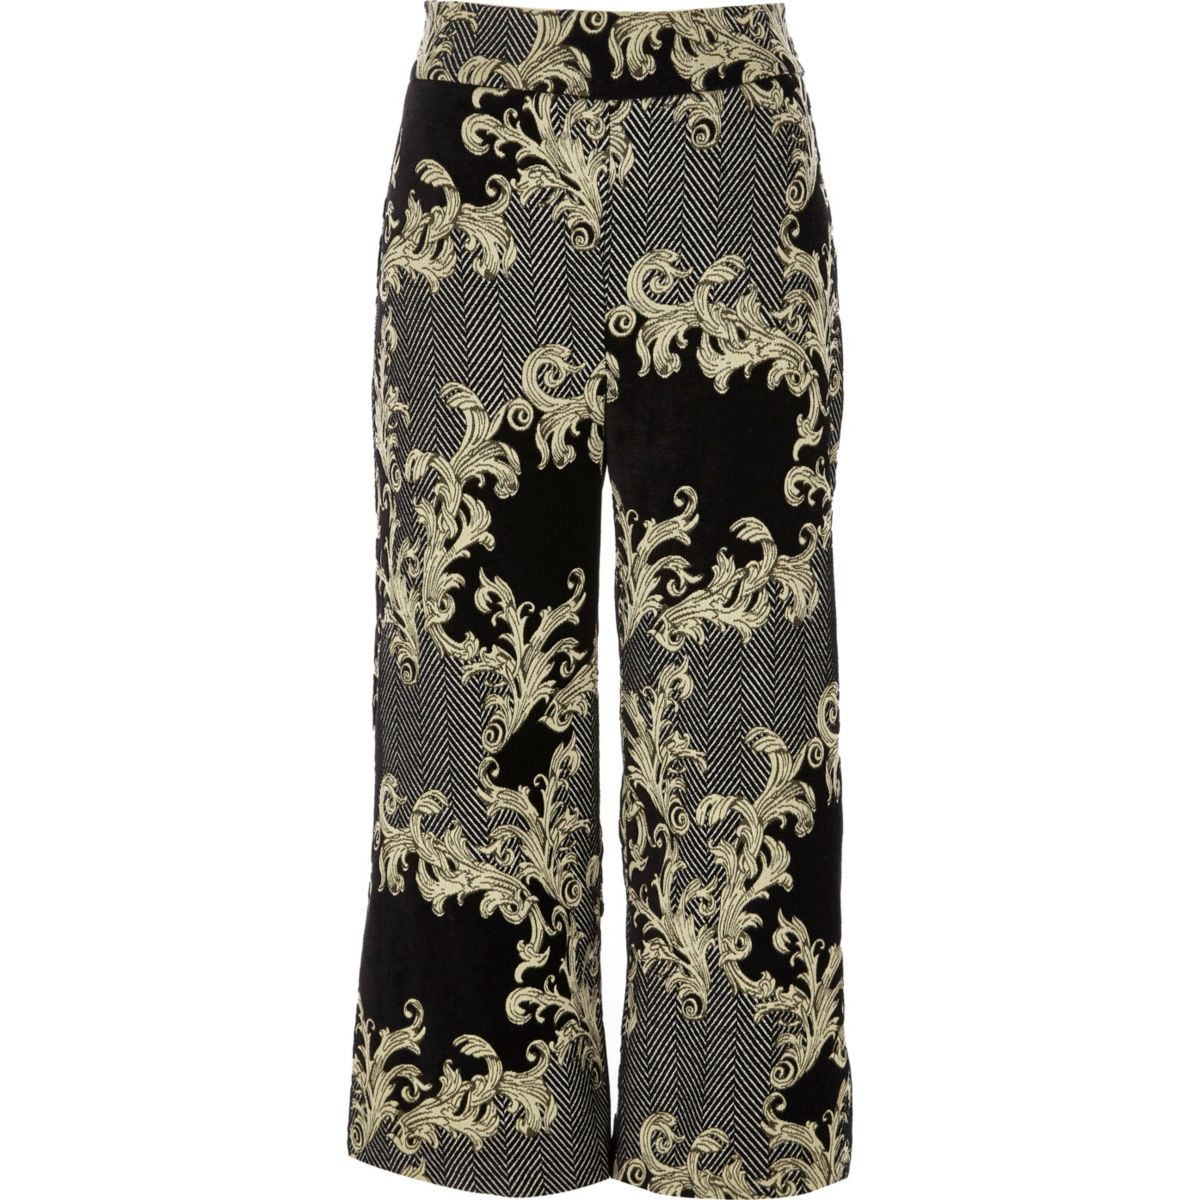 Black and gold jacquard culottes